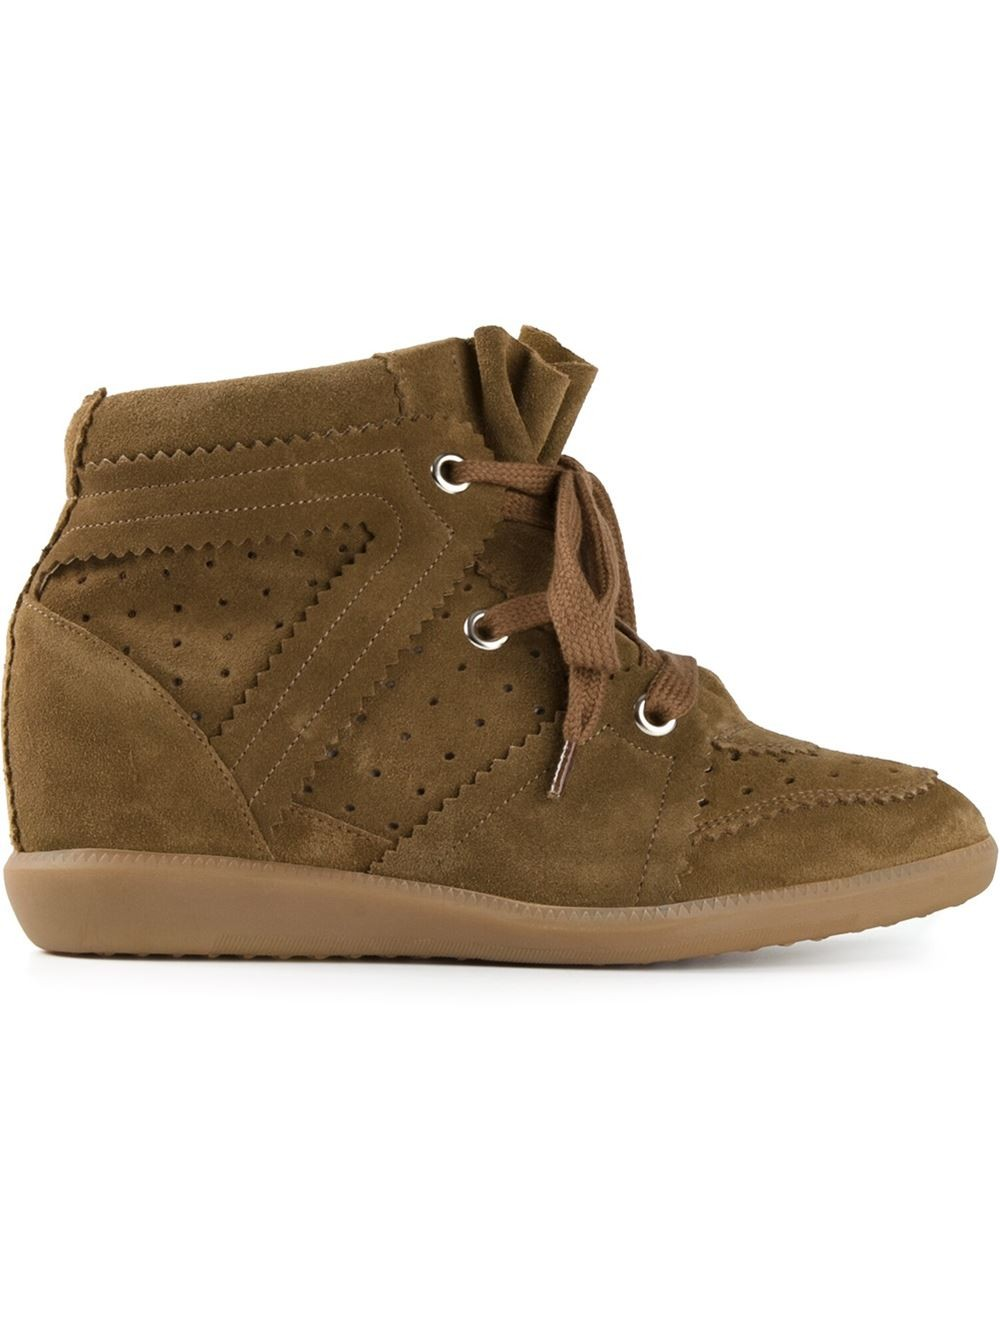 Isabel Marant Etoile Bobby Brown Women's Wedge Sneakers